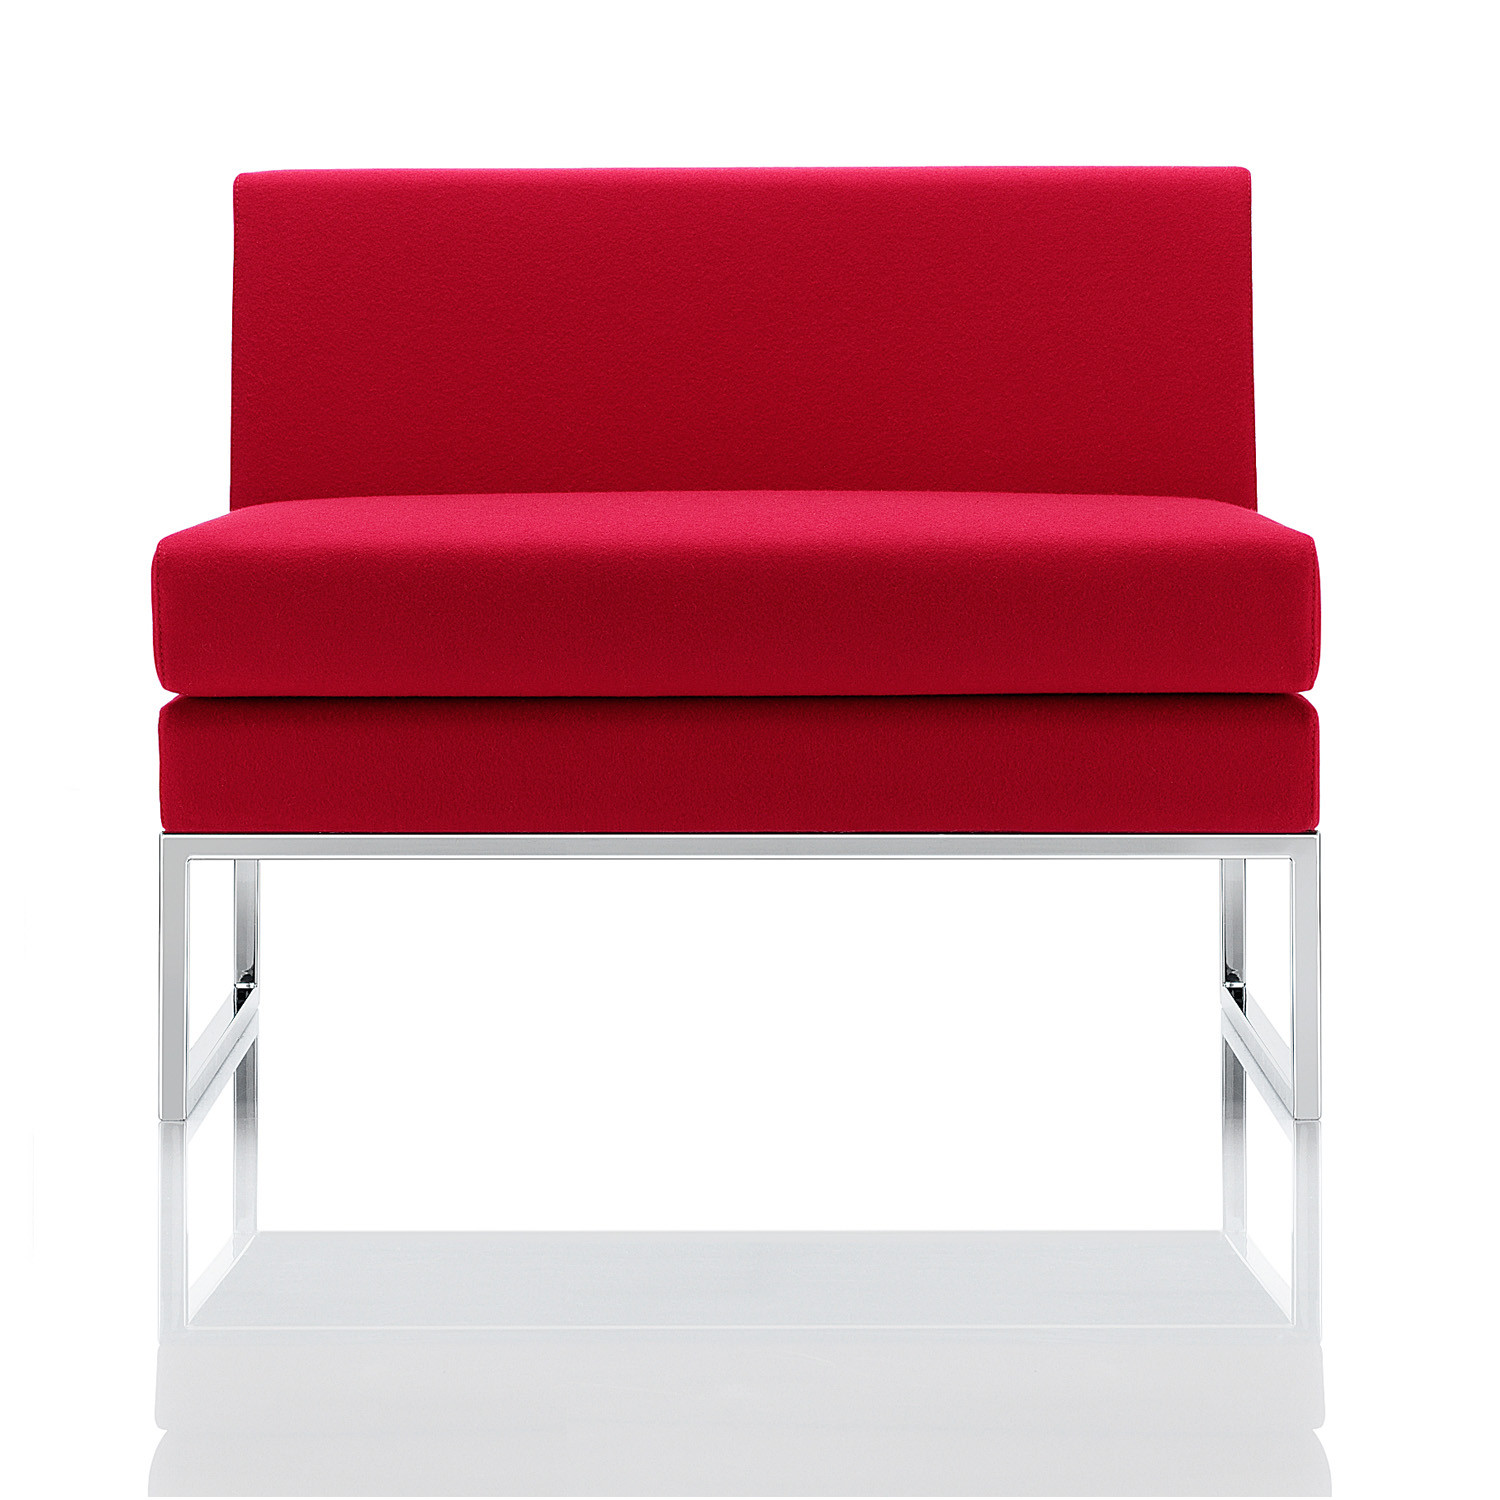 Layla Modular Seating System Bench